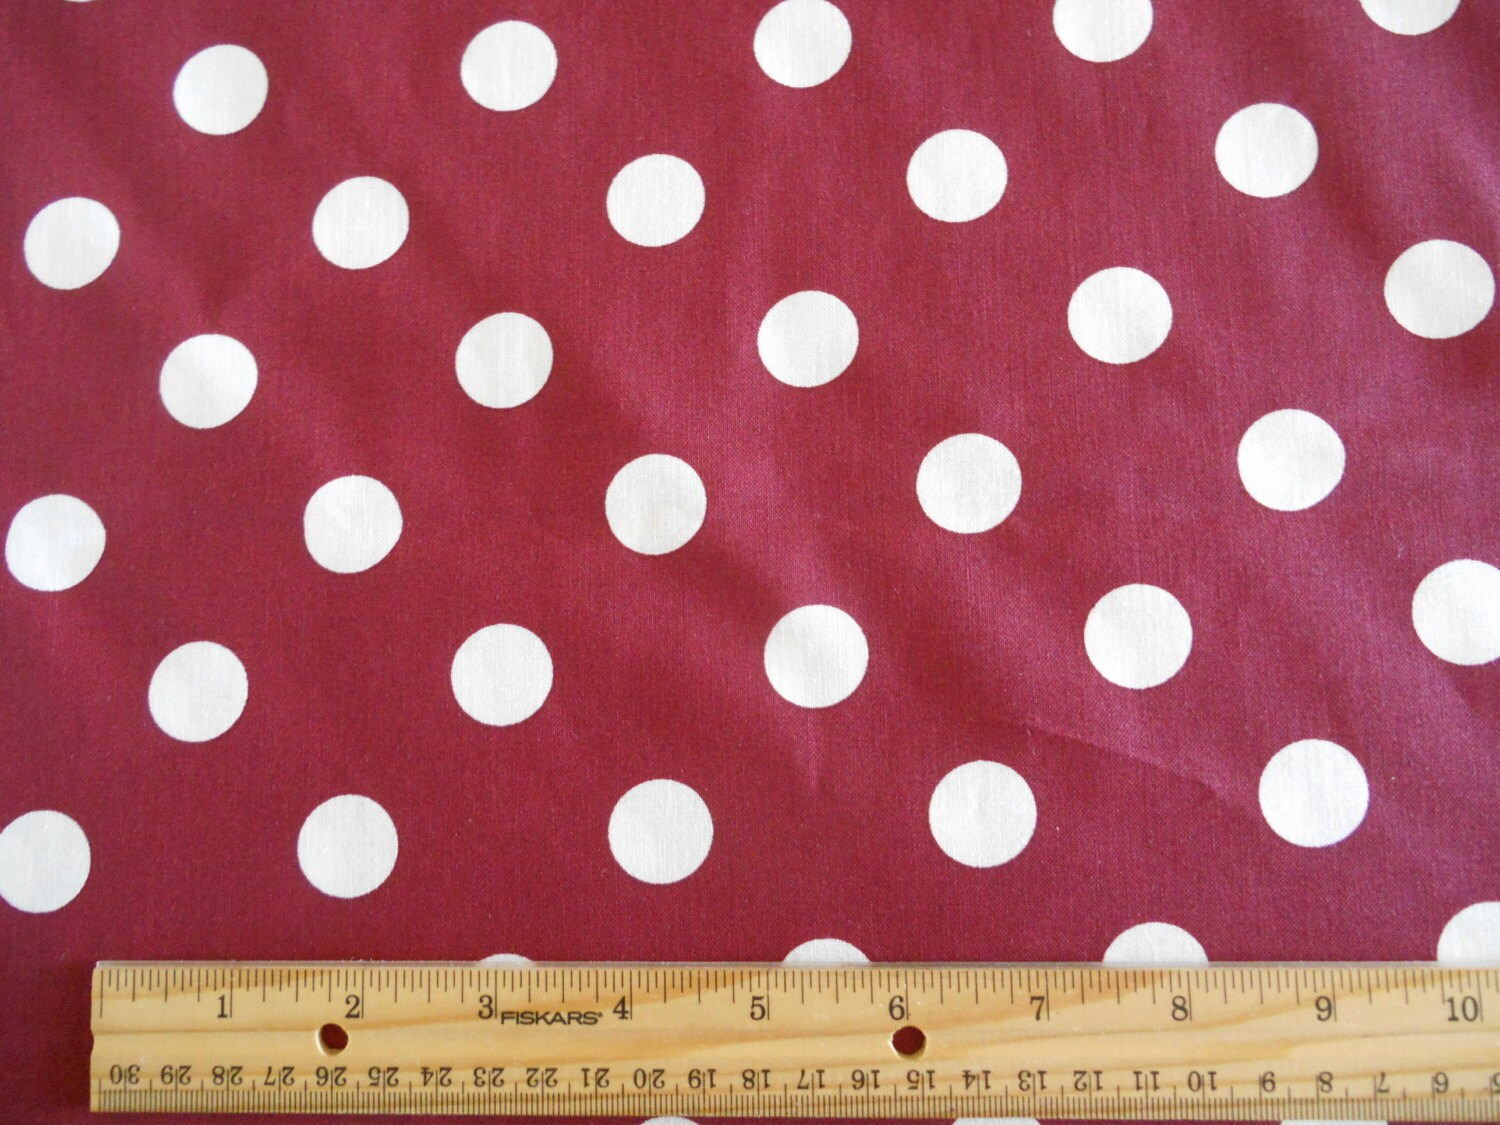 Garage Sale Dots Burgandy With White Dots Cotton Fabric By The Yard Sale